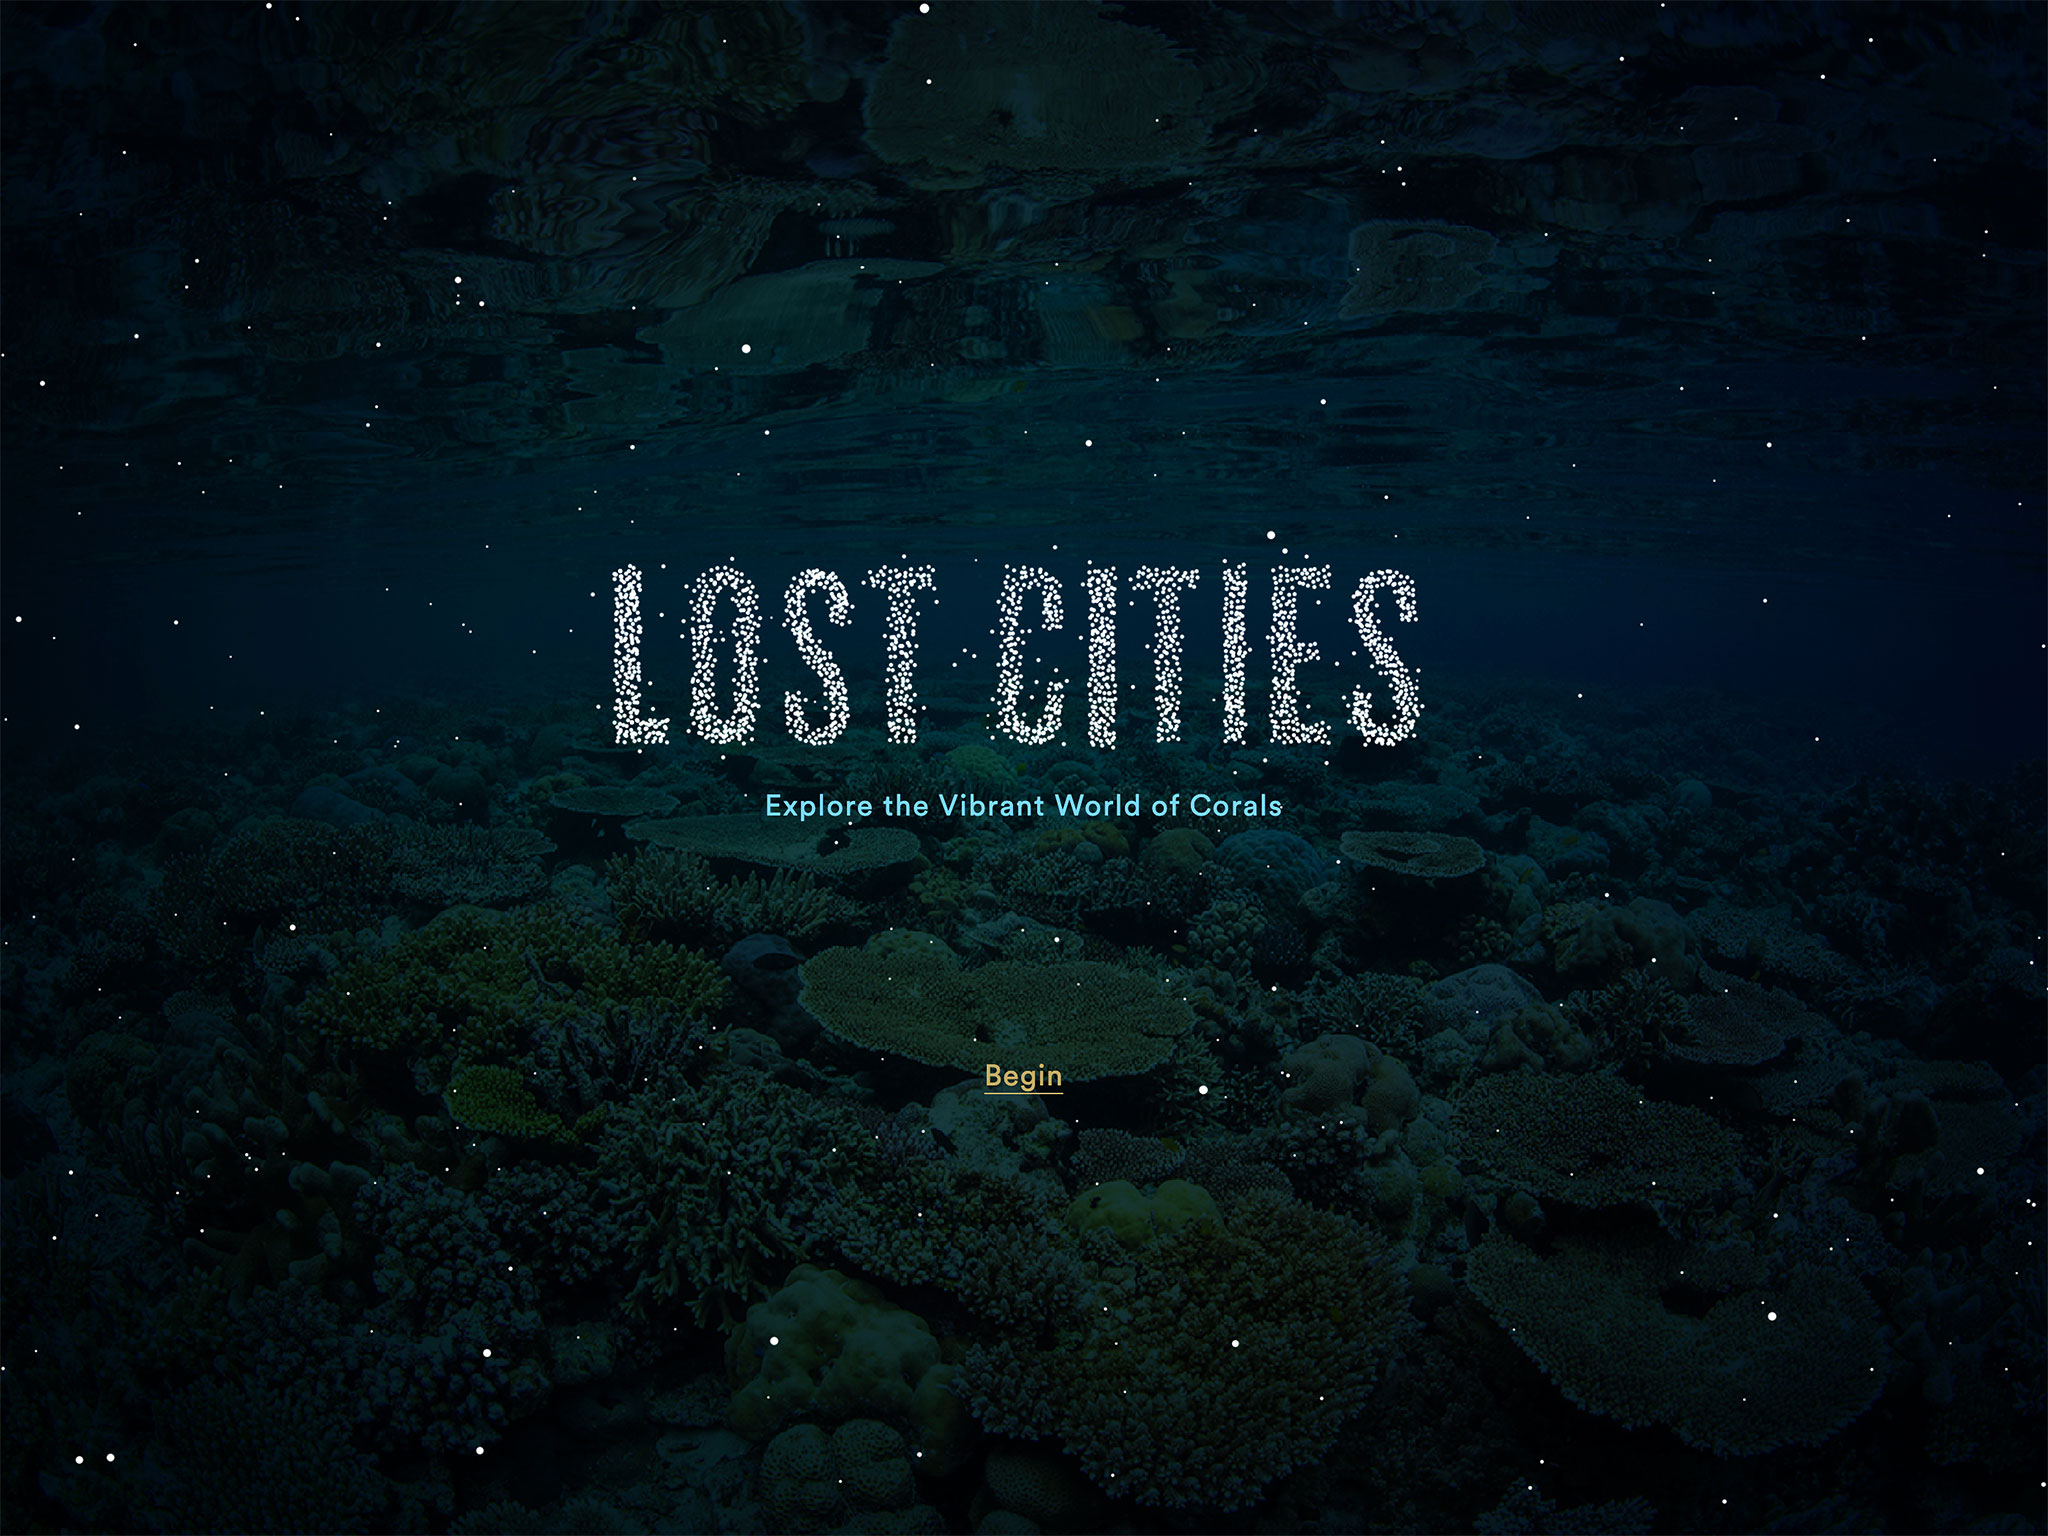 Lost Cities: A Story of Coral